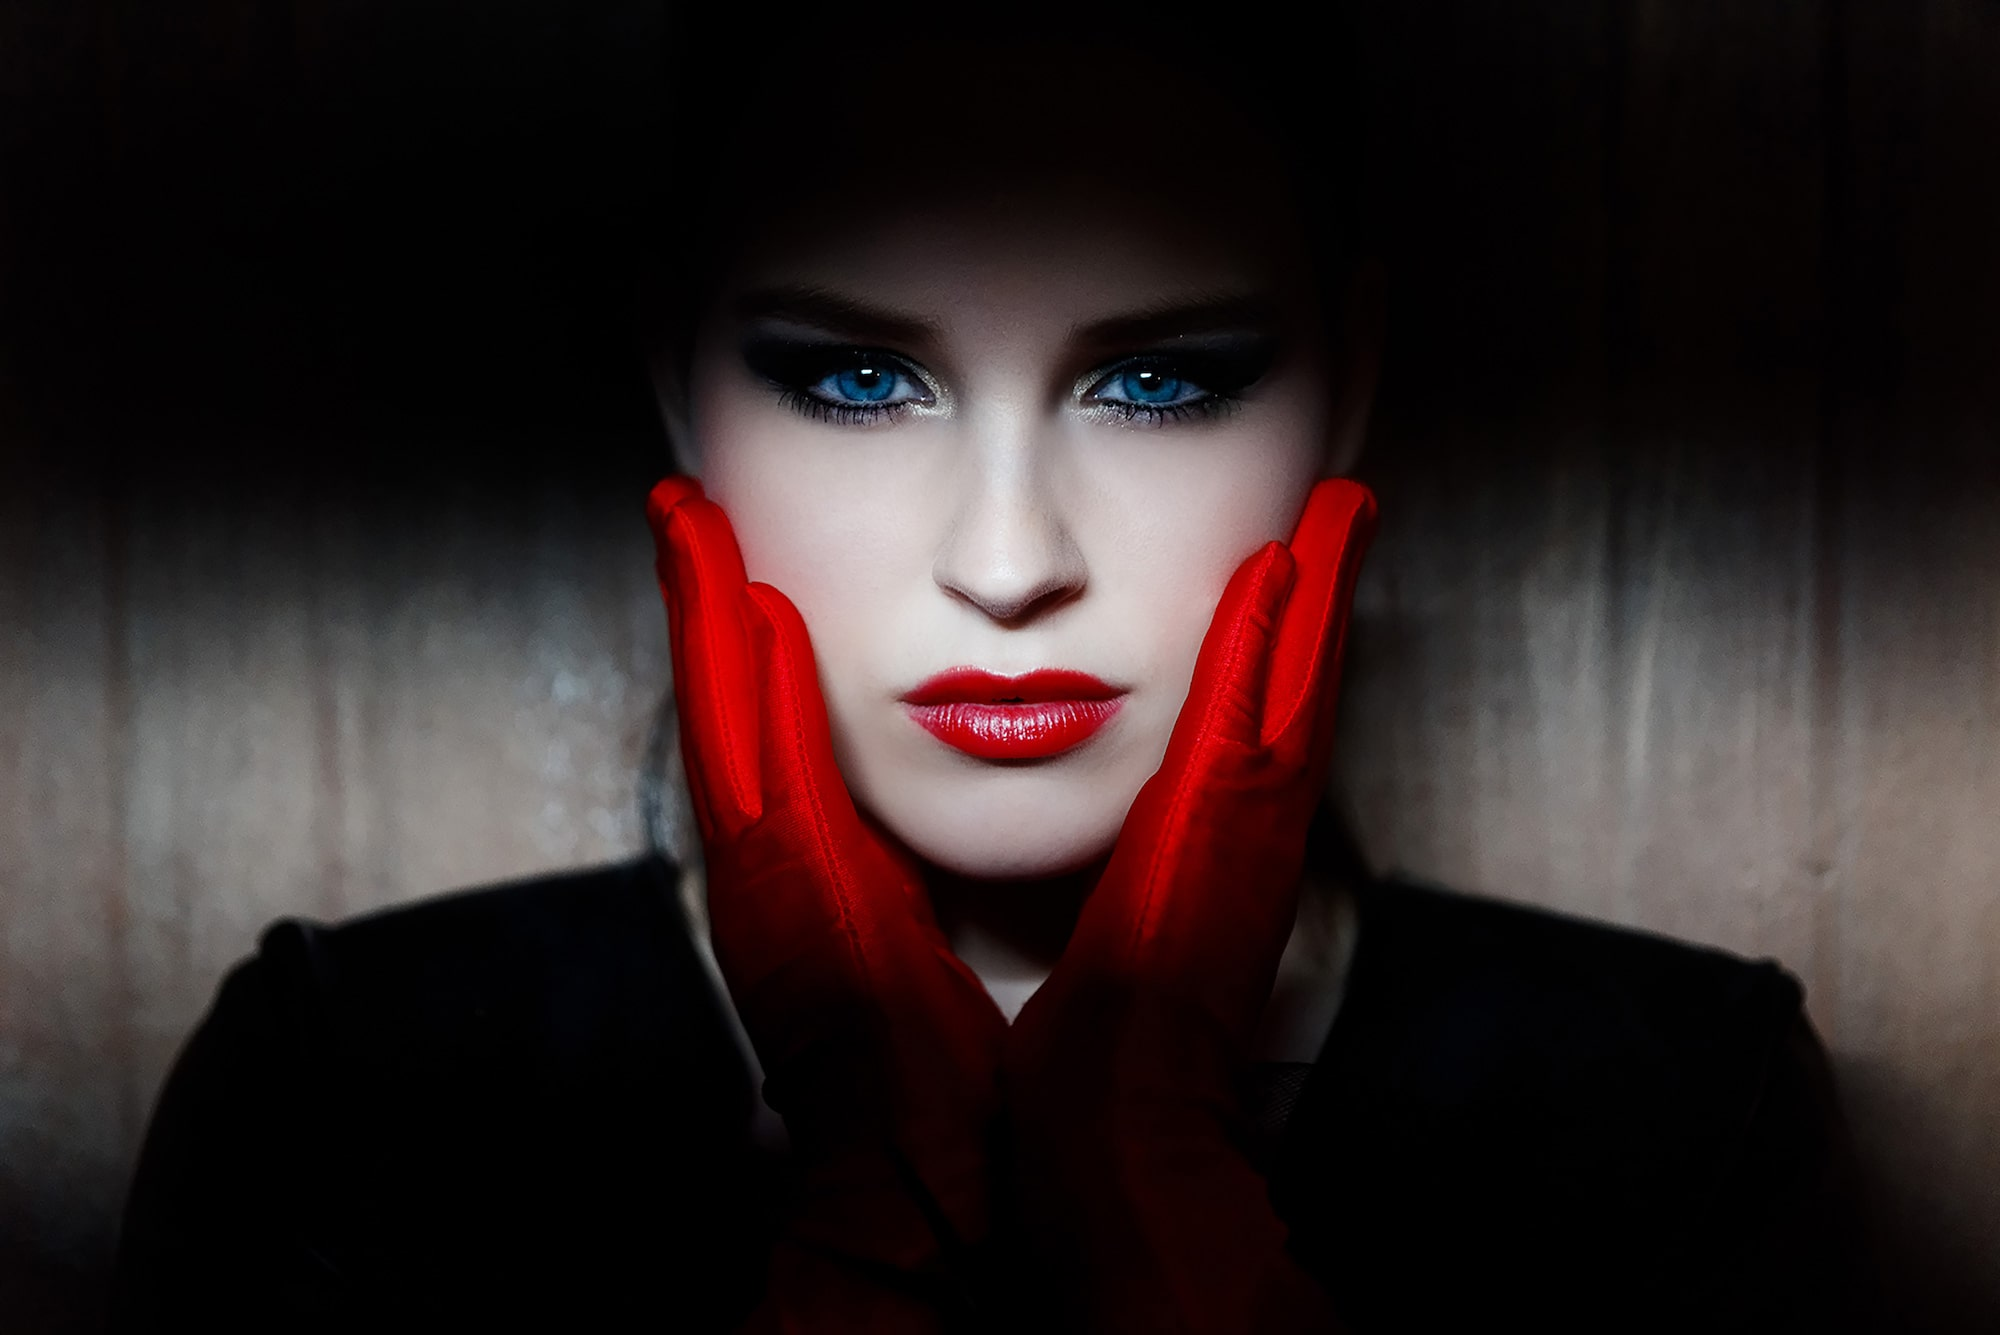 frank doorhof sony alpha 7R lady with blue eyes holding her hands against her face wearing red gloves